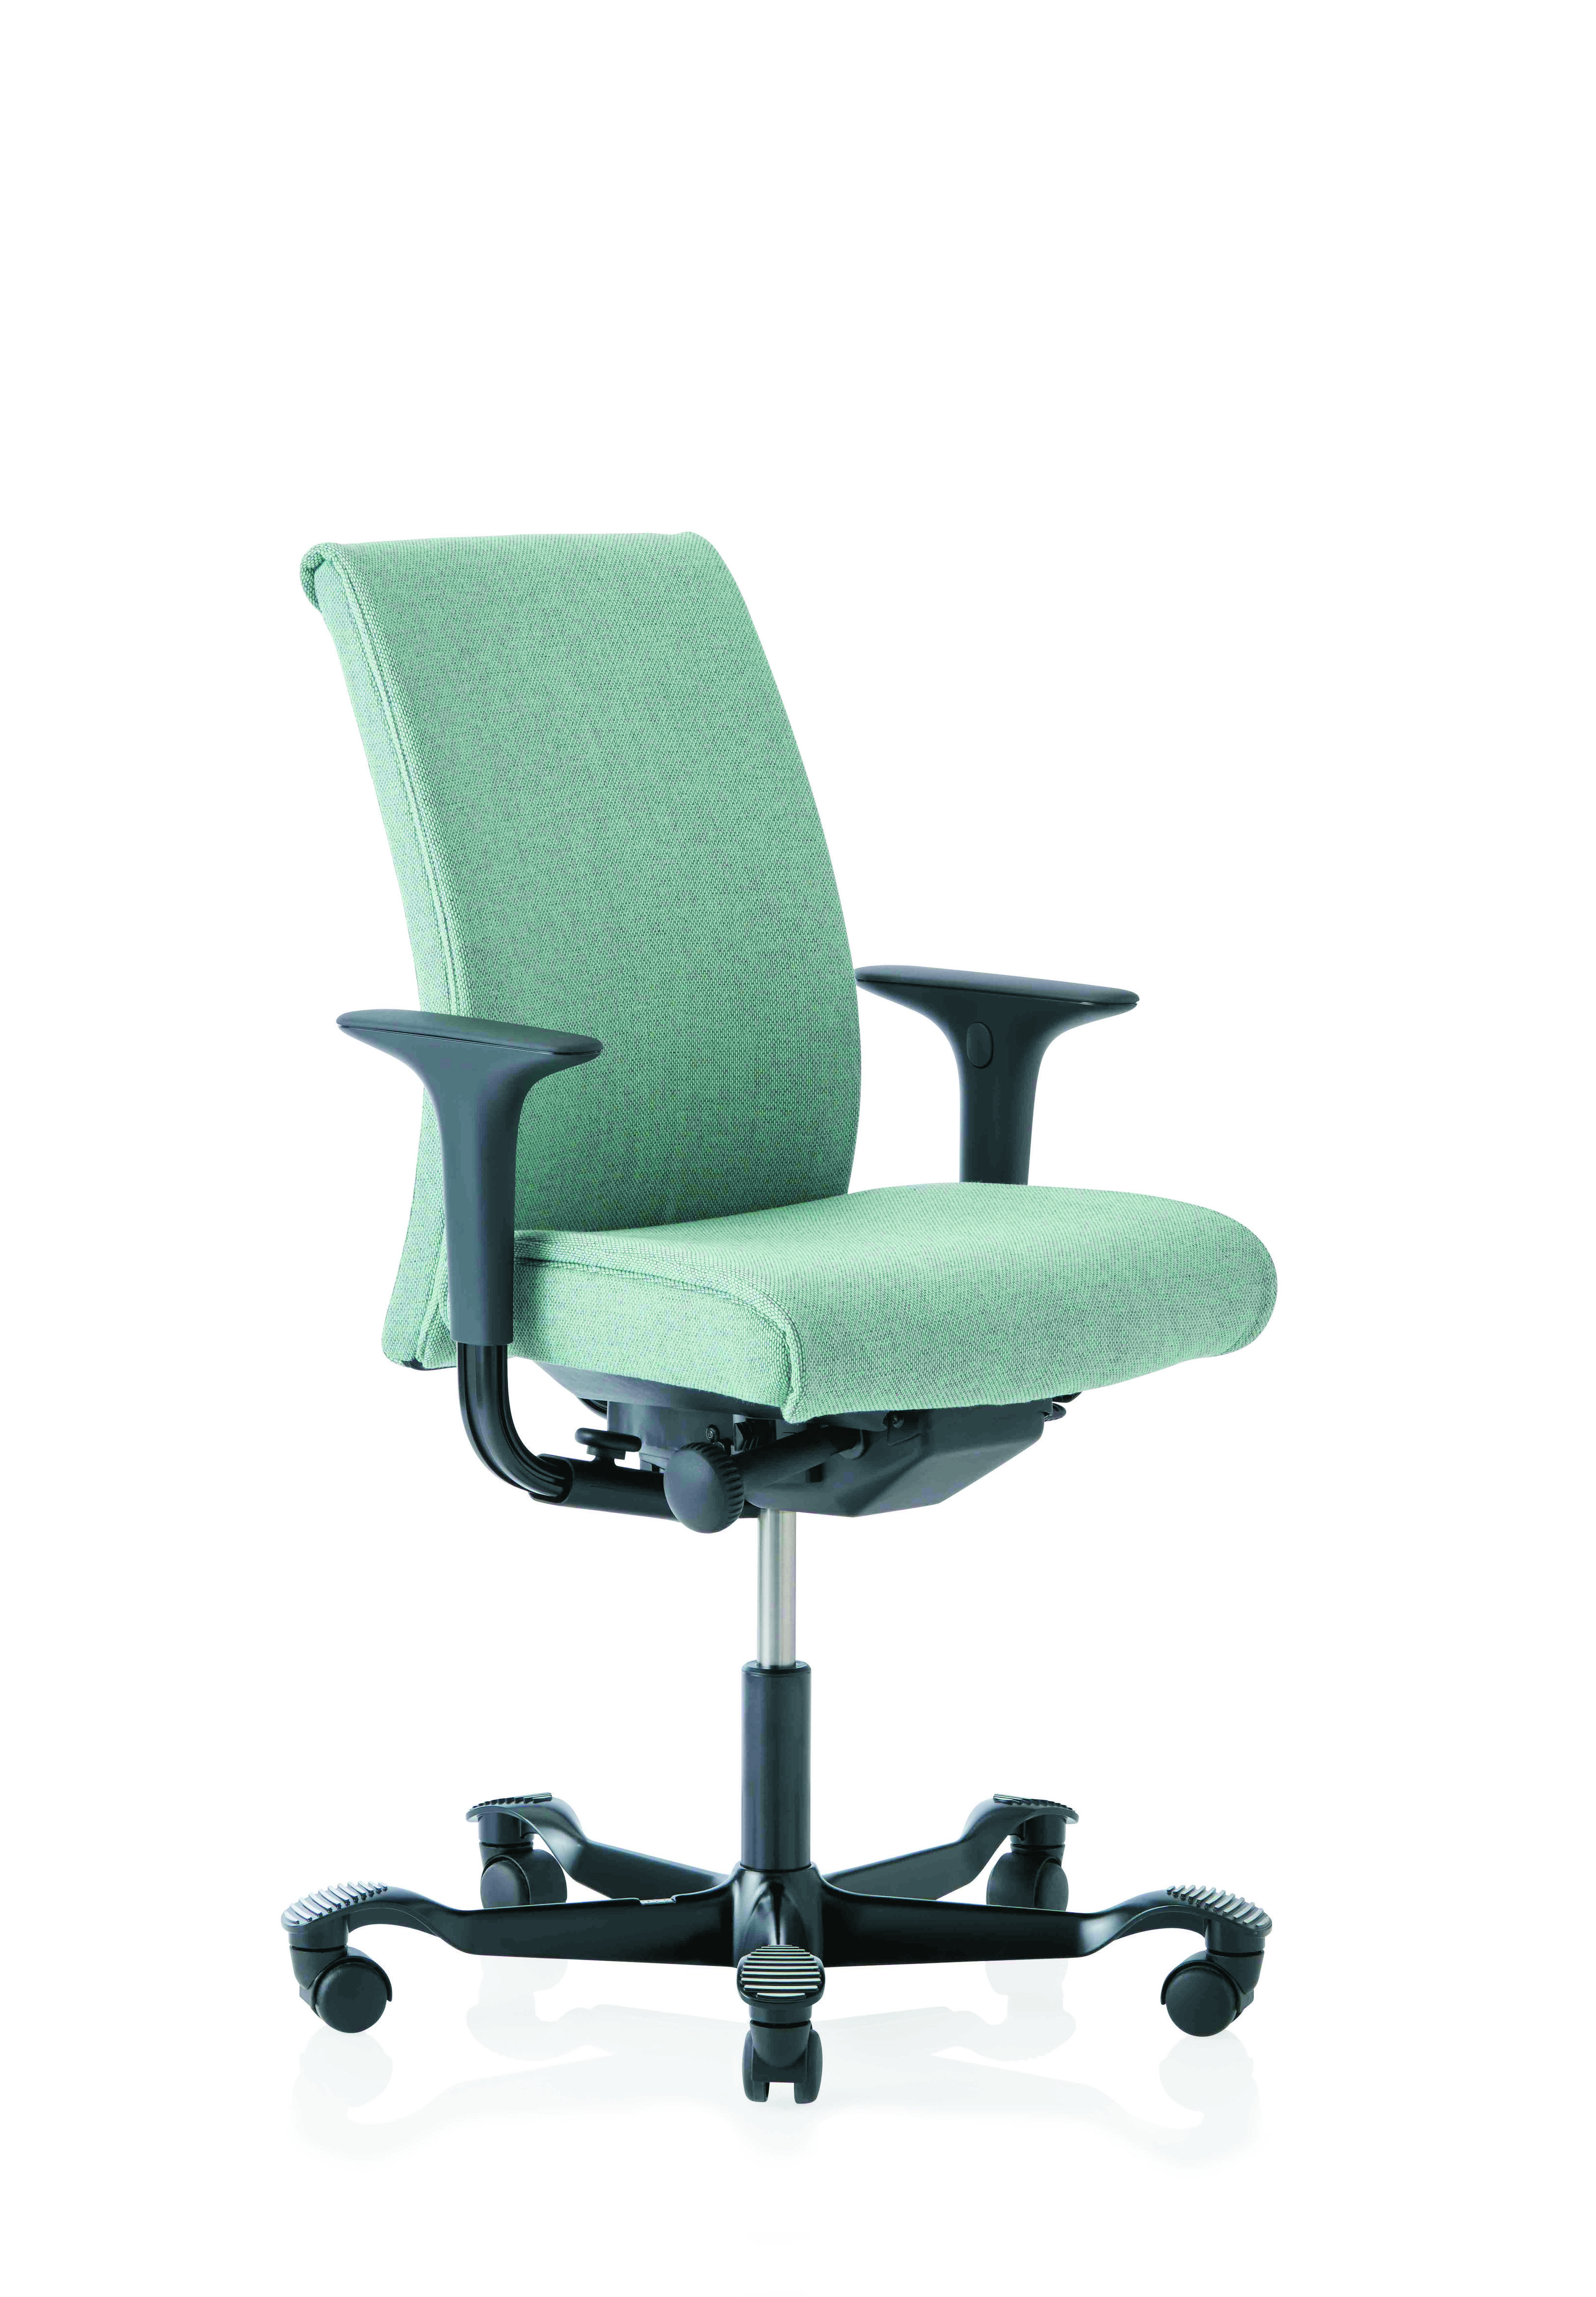 HAG Creed 6056 Chair Chair, Ergonomic office chair